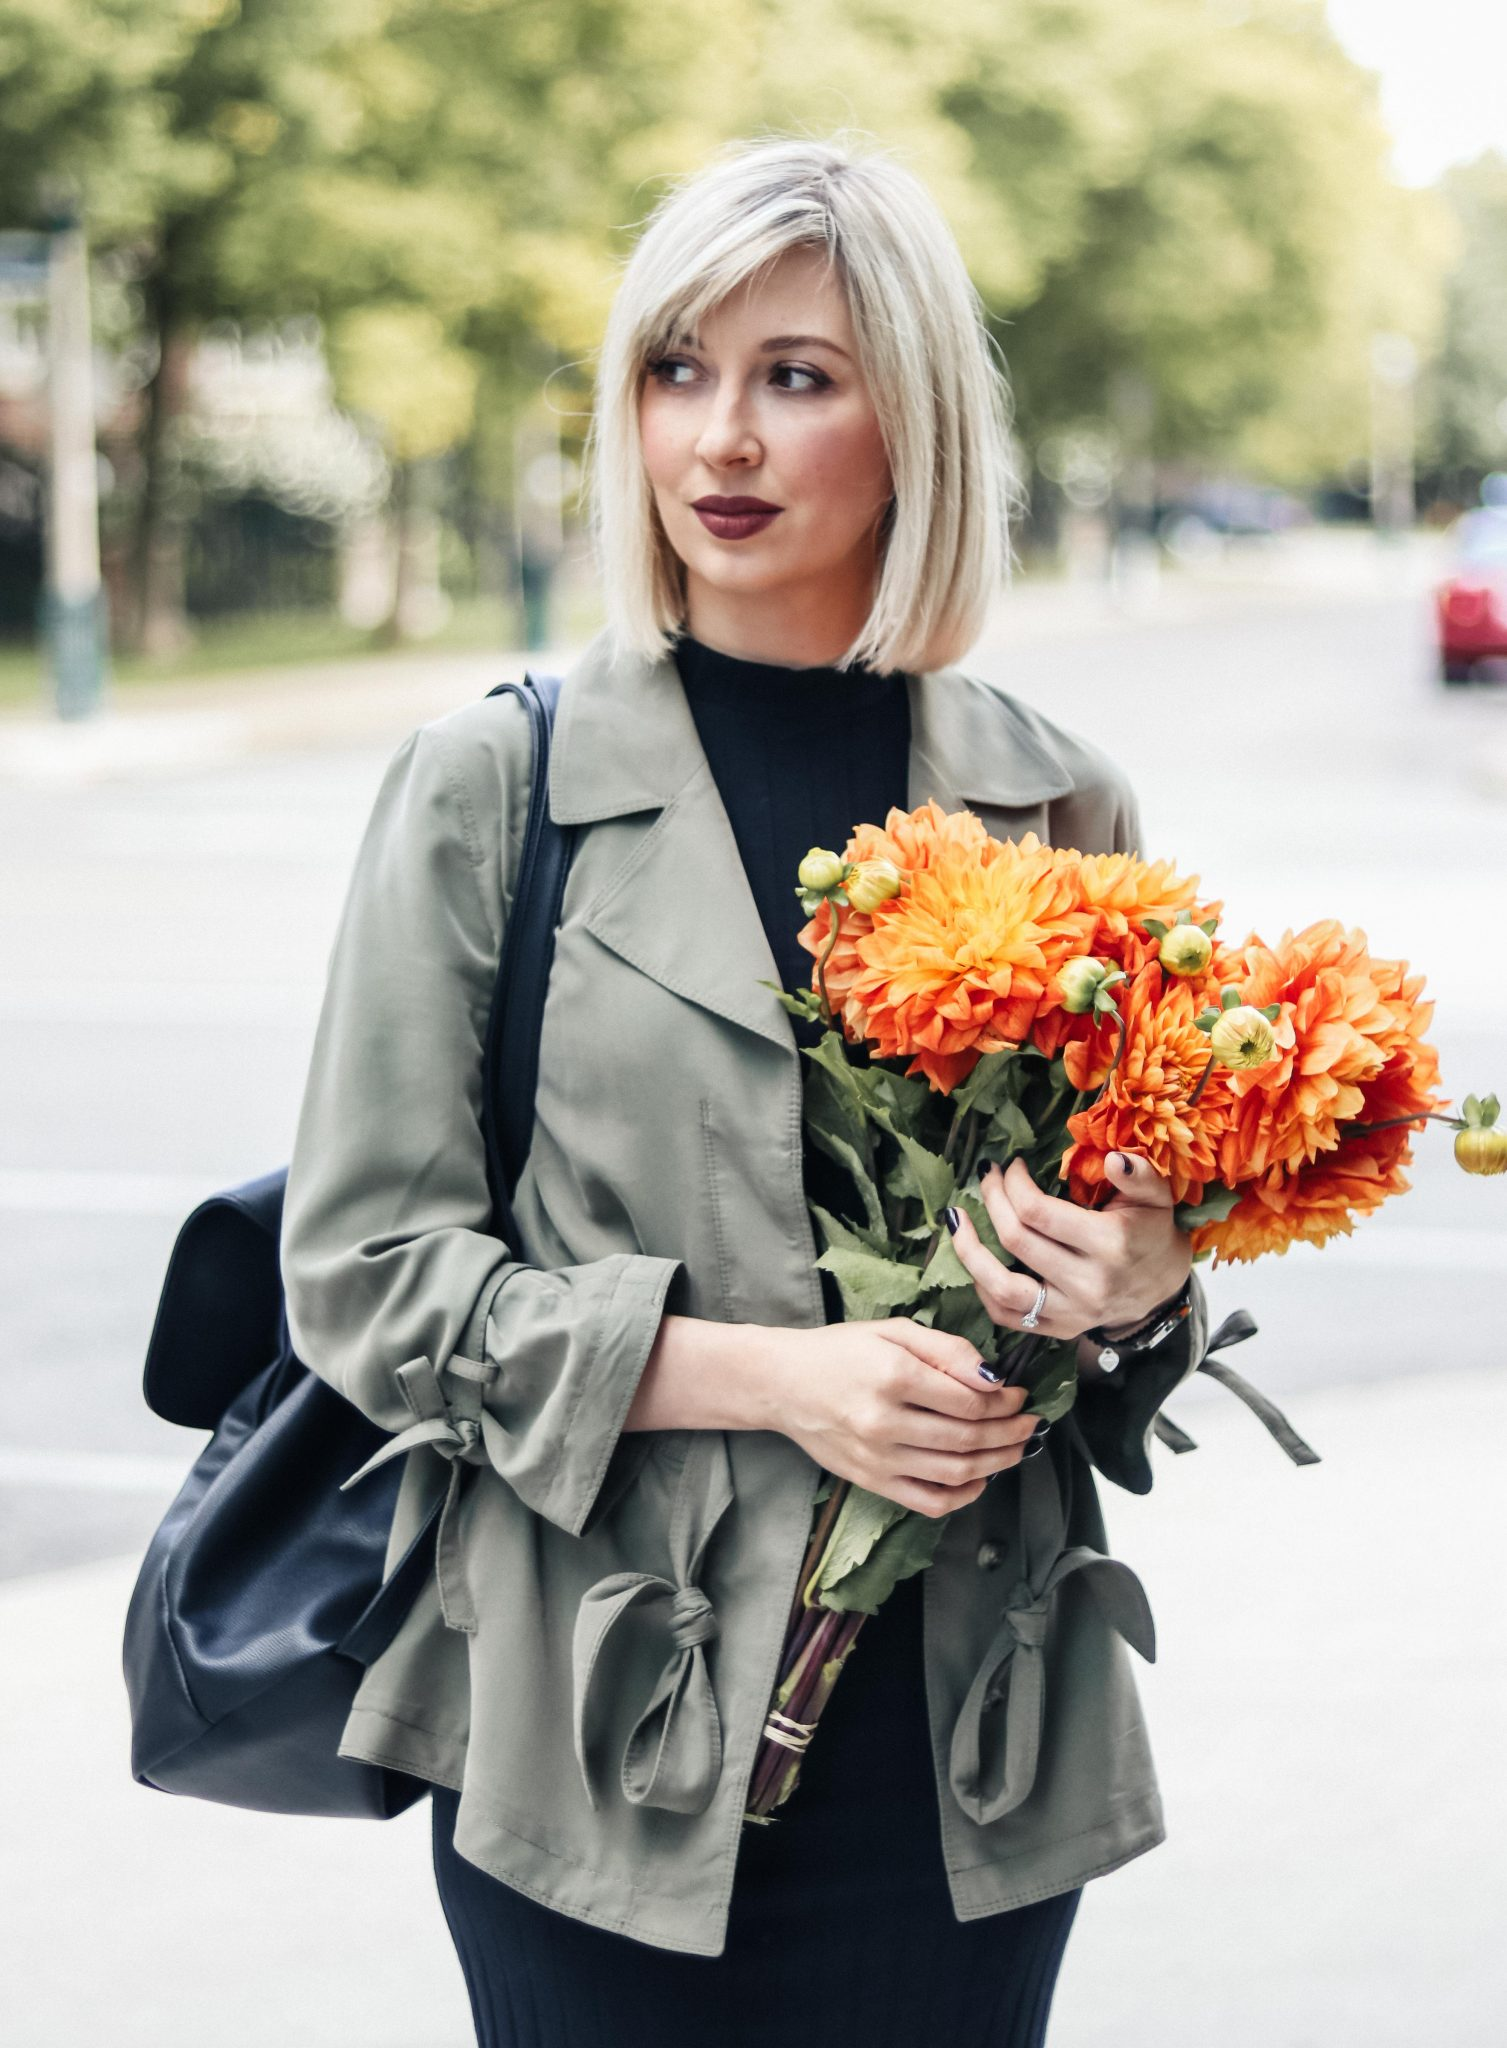 fitted dress, khaki top and flowers